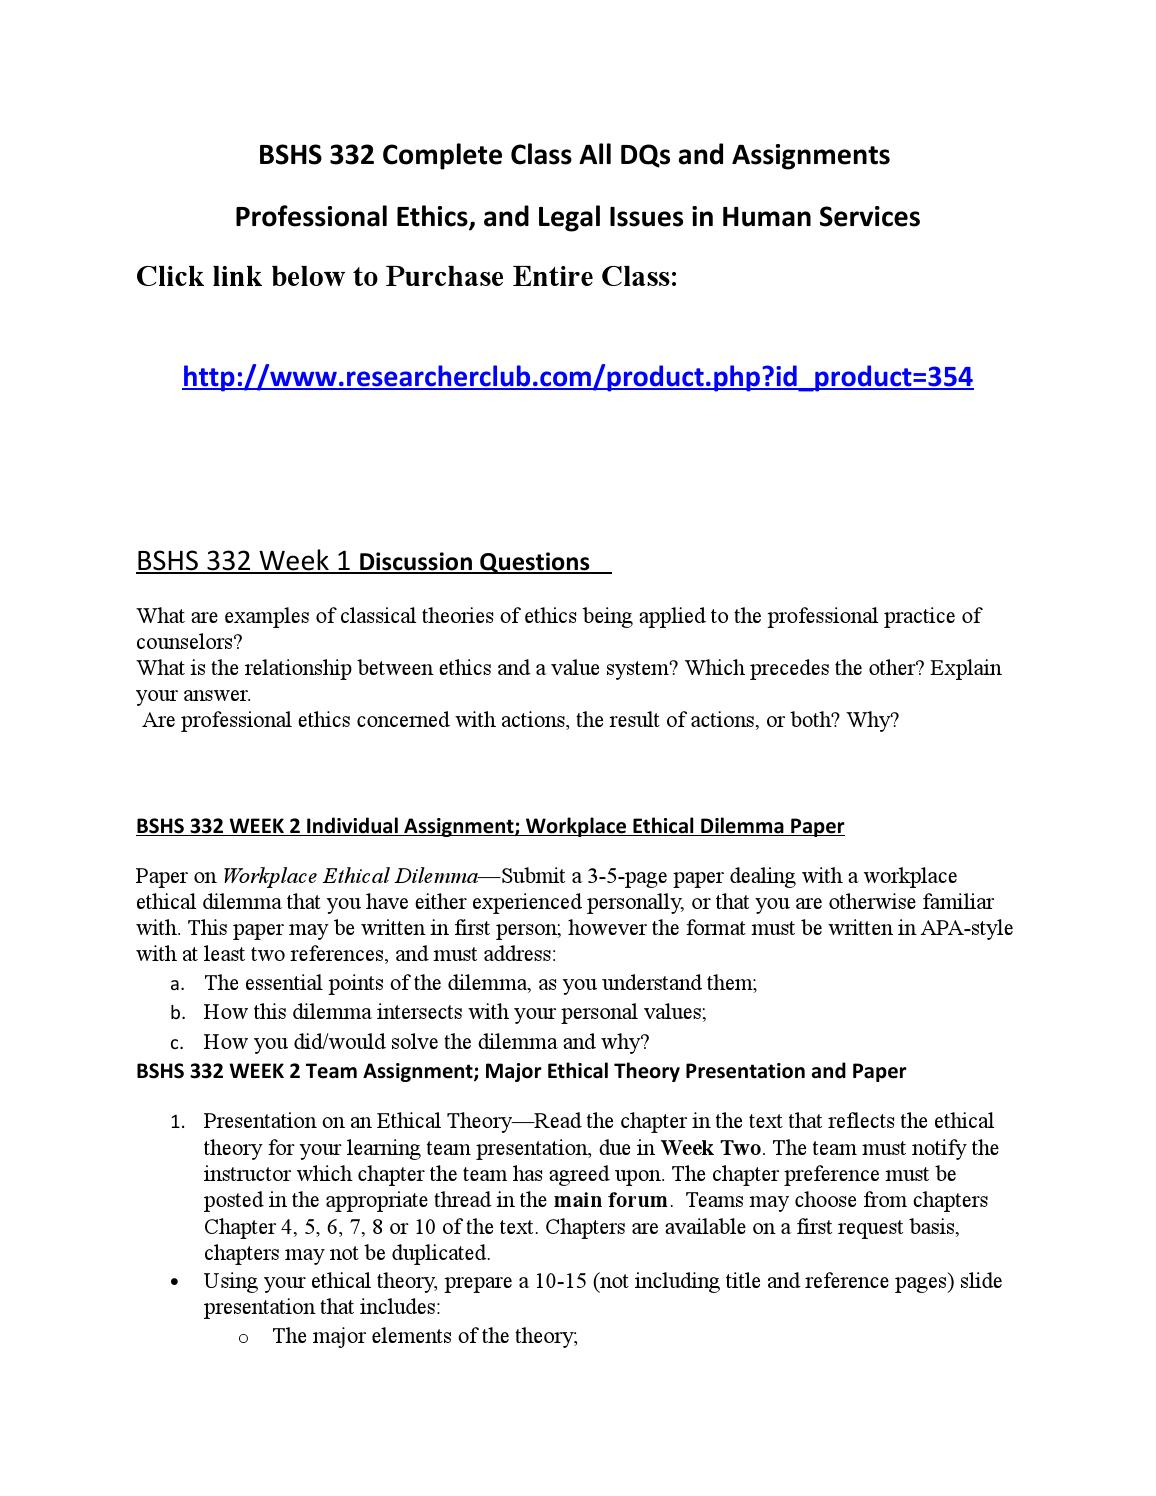 personal values ethical standards bshs 332 Bshs 332 week 4 personal values and ethical standards paperdoc  bshs 332 week 5 team assignment ethical standards for researchdoc bshs 332.